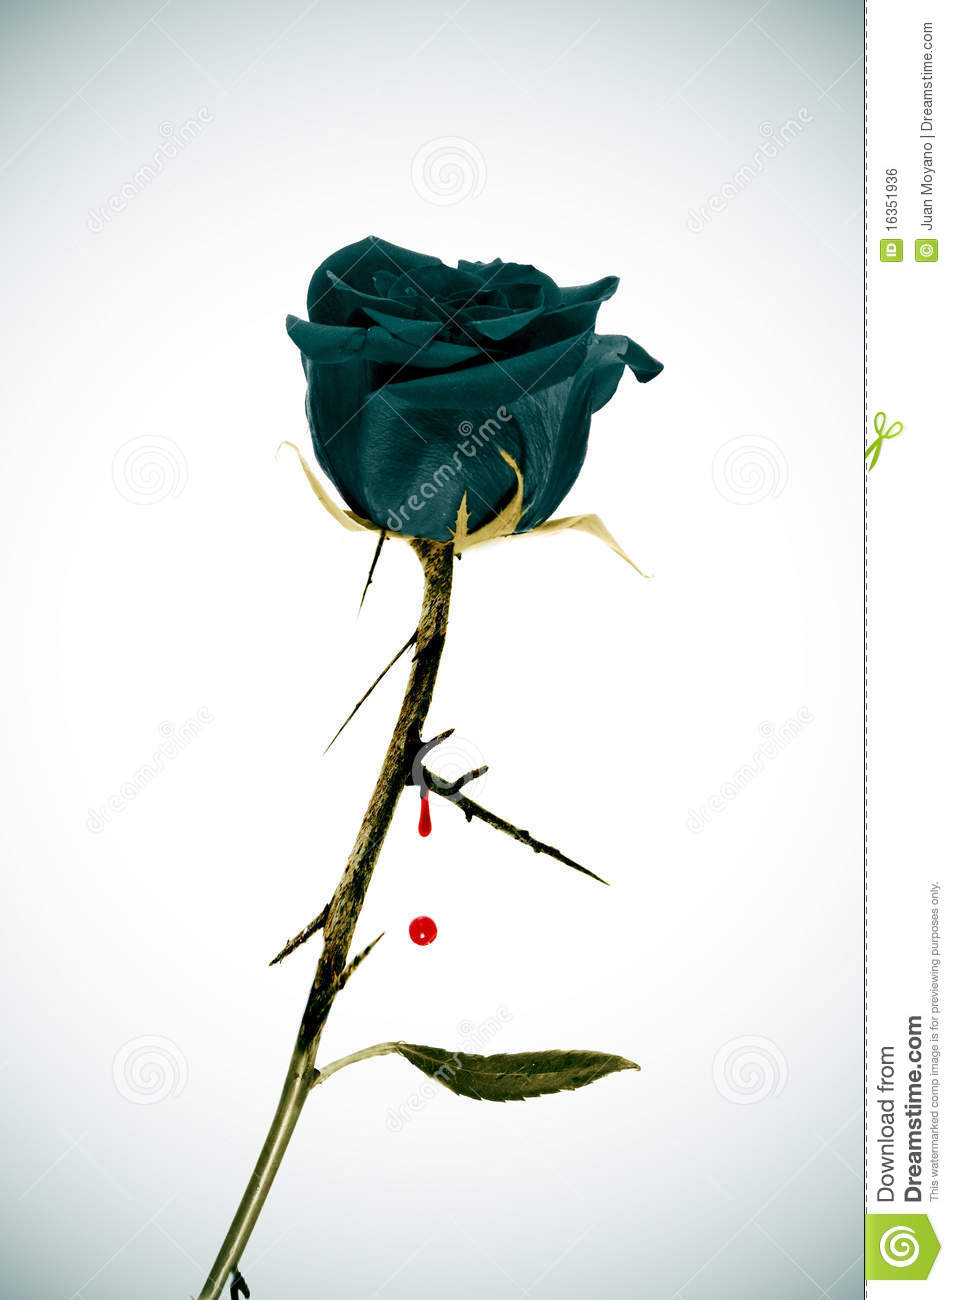 Emo rose royalty free stock image image 16351936 - Emo rose pictures ...